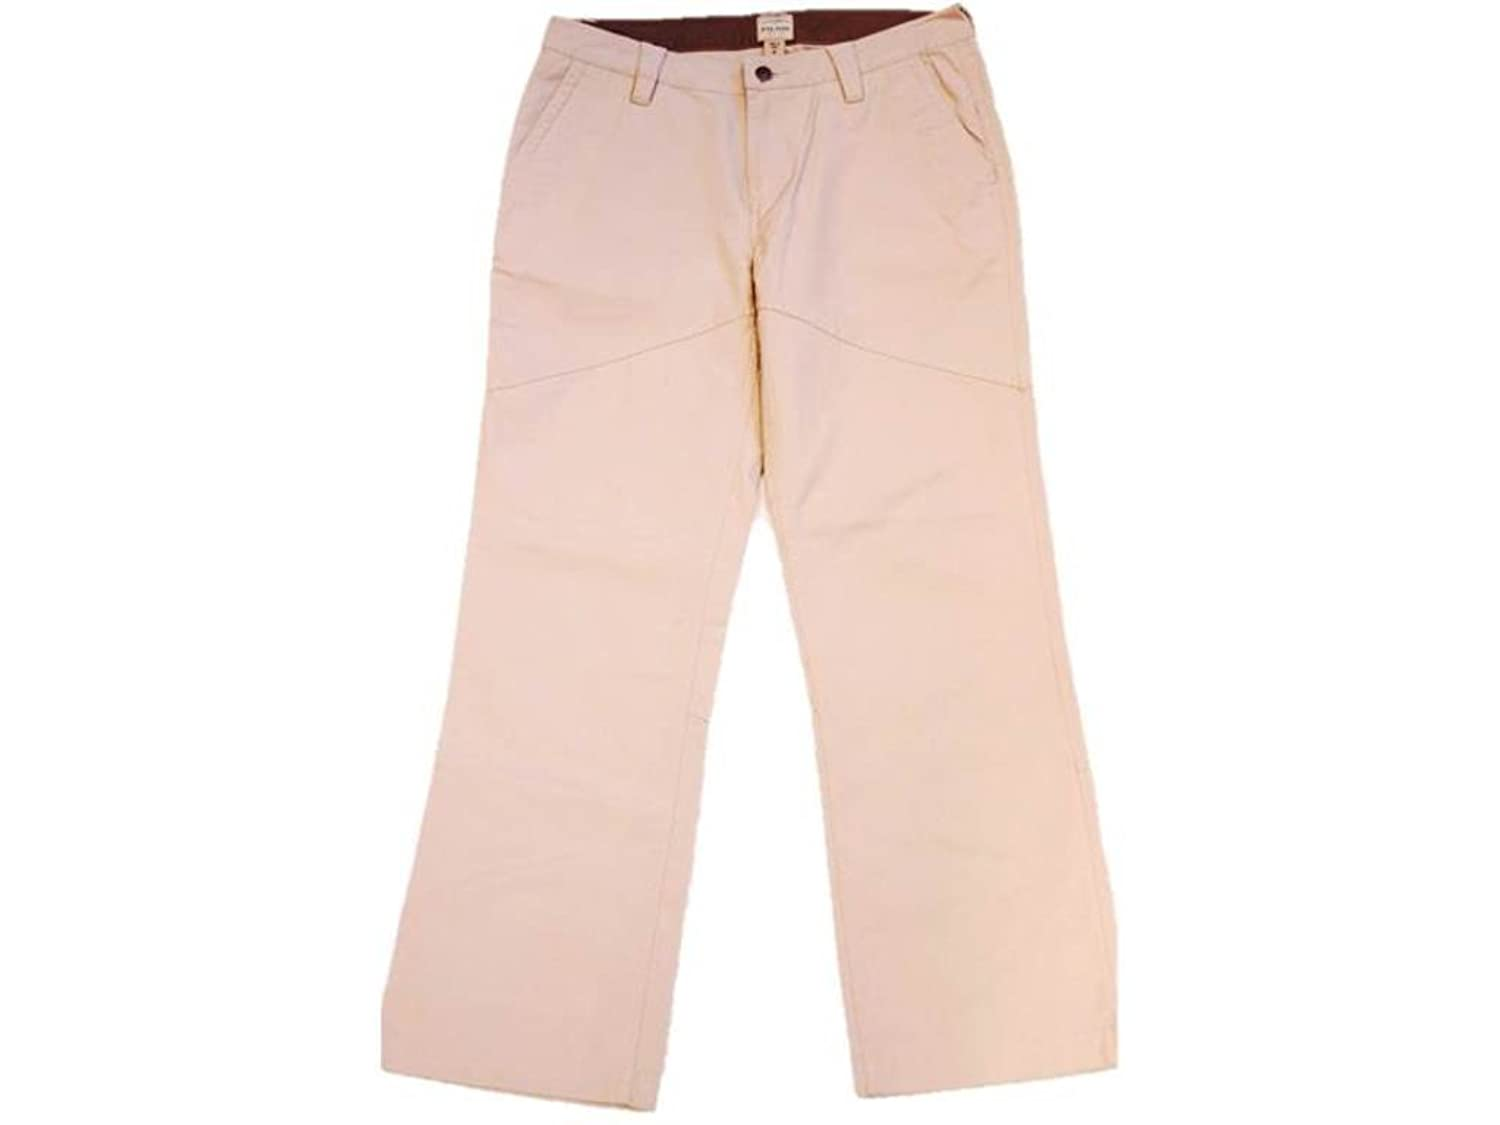 C. C Filson Women's Seattle Relaxed Pants, Light Beige, 8